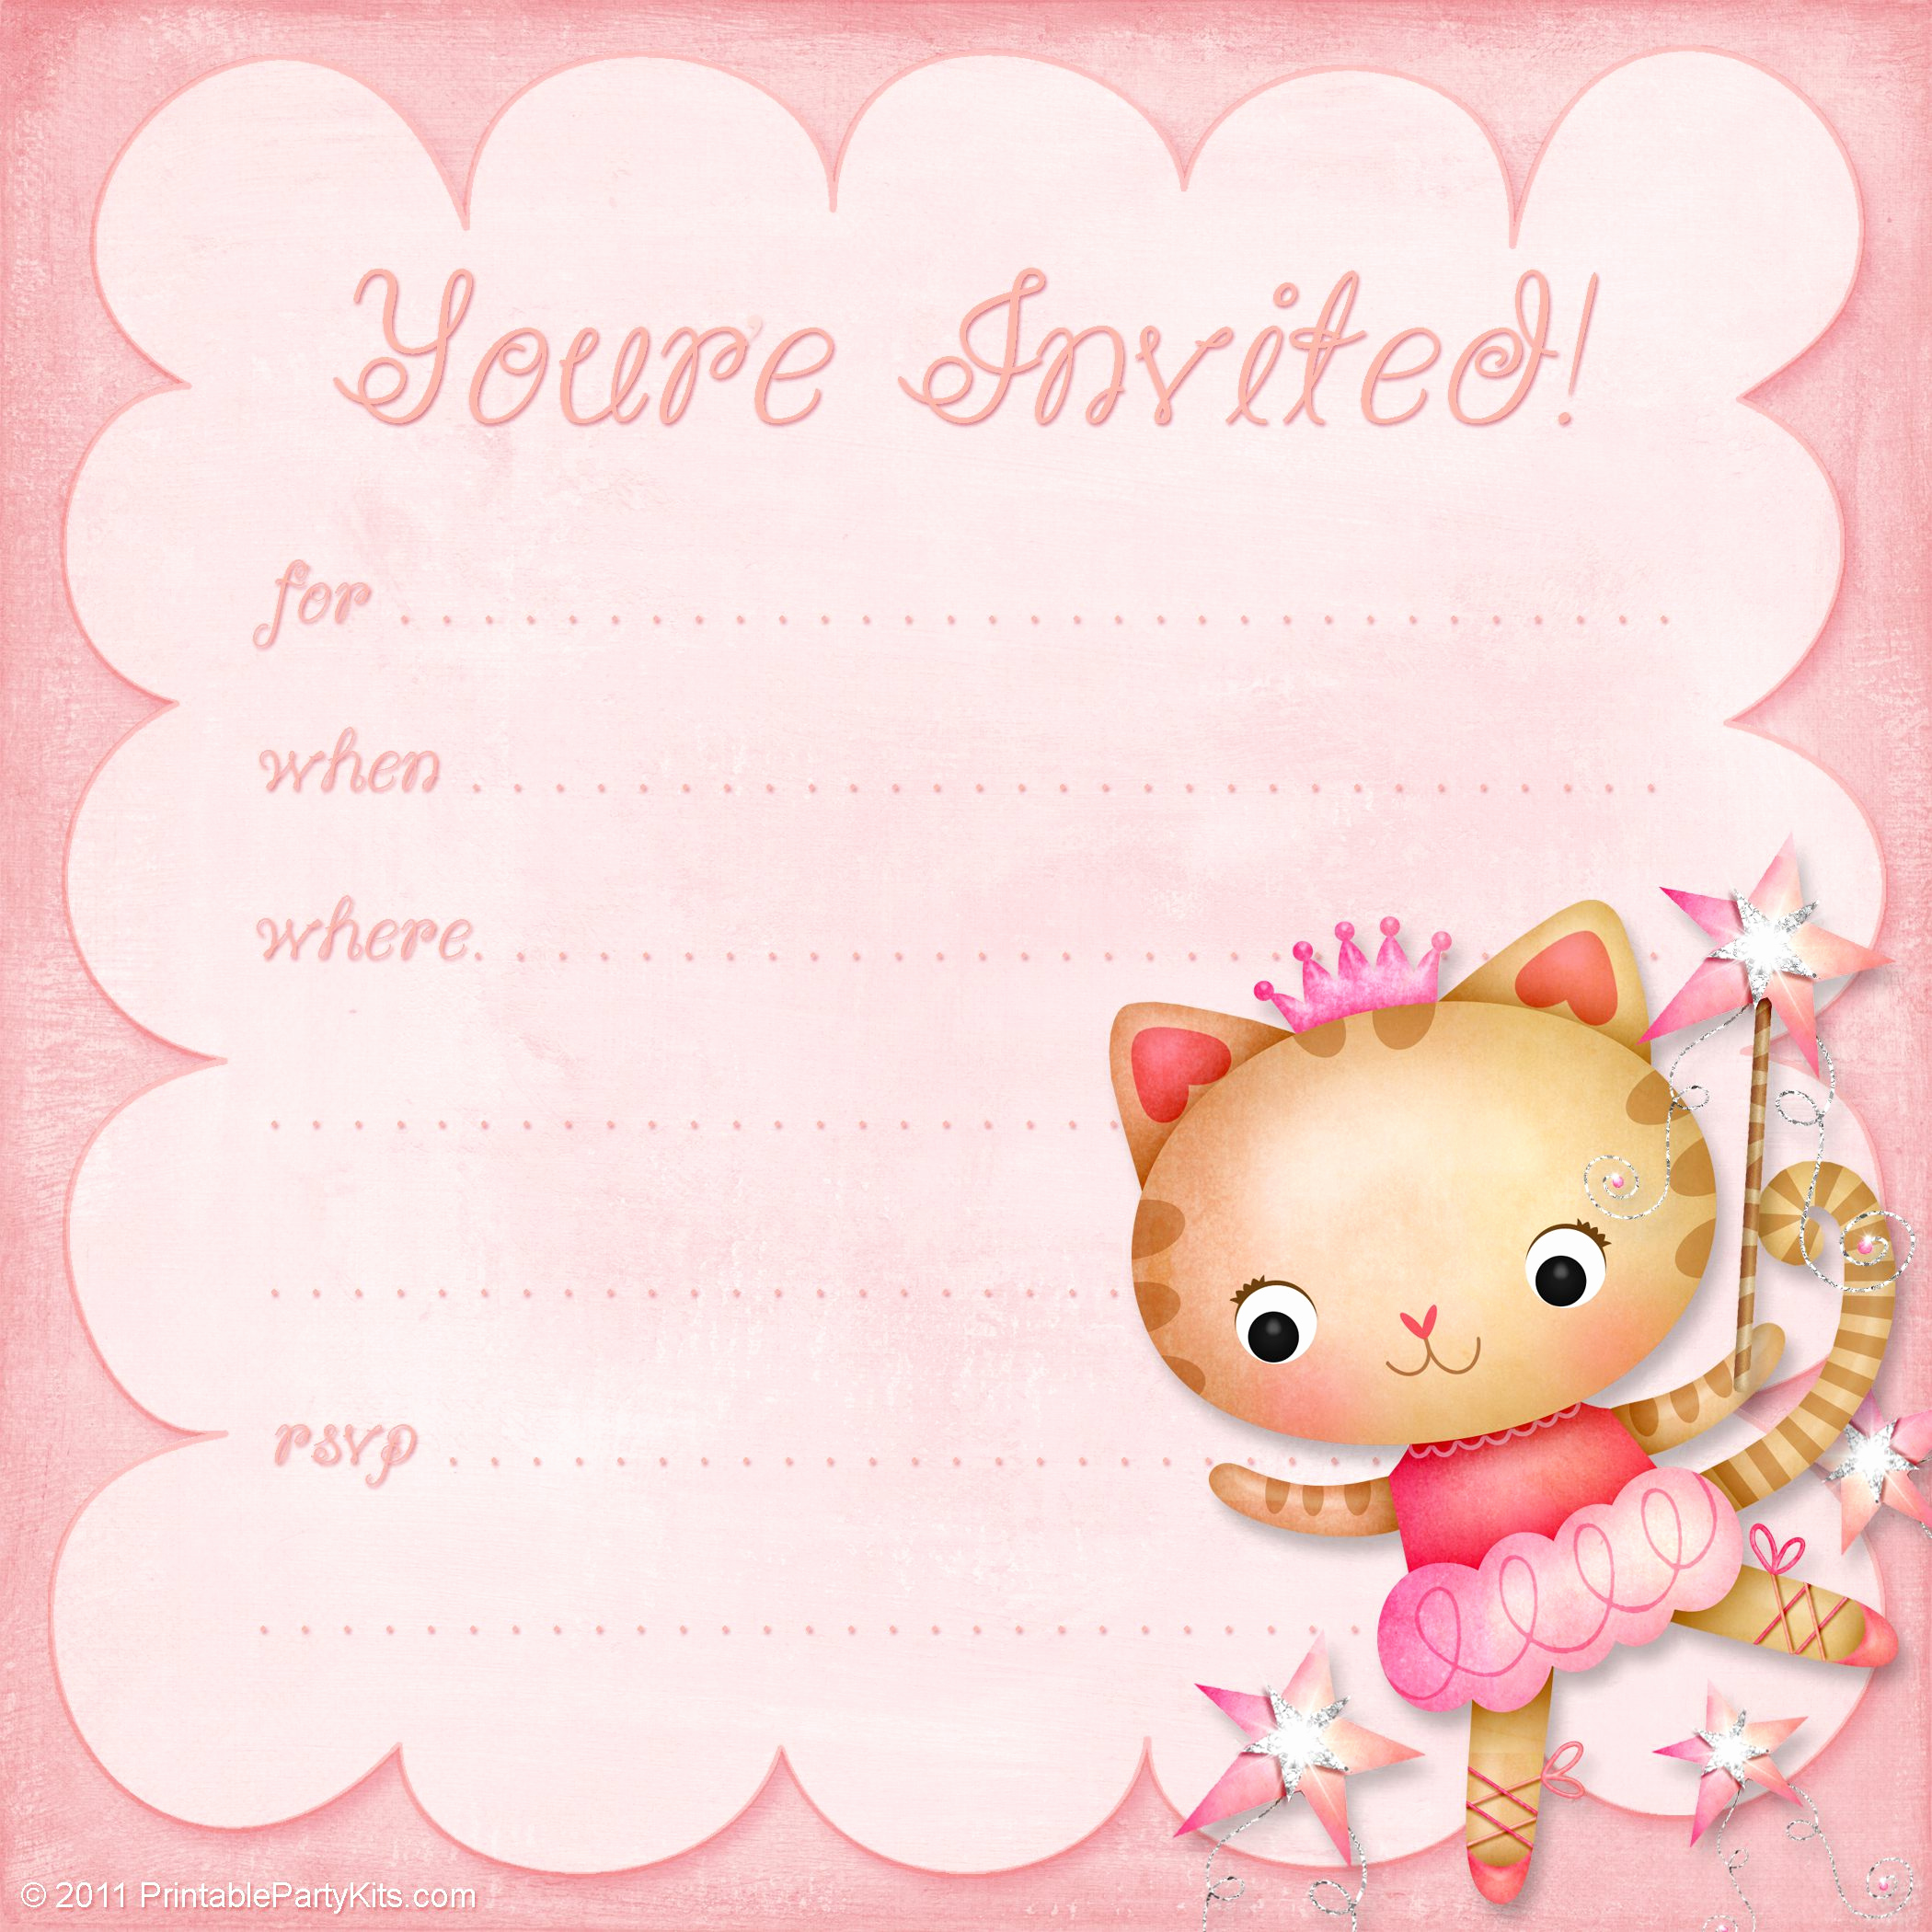 Invitation Template Google Docs Luxury Birthday Party Invitation Template Birthday Party